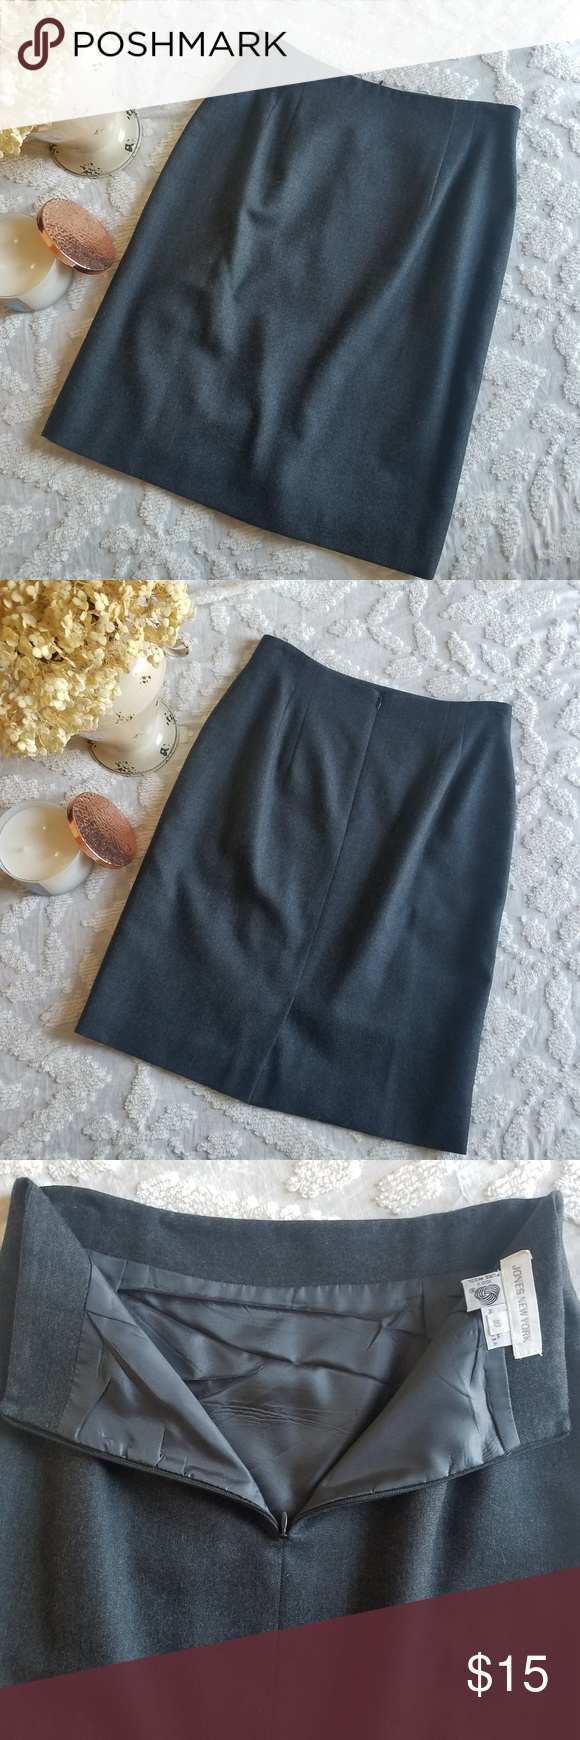 a6399a5820 Charcoal Grey Wool Pencil Skirt Jones New York Pencil Skirt 100% wool skirt  with lining Back Zipper and slit Marked Size 10, but measures to size 6 in  ...